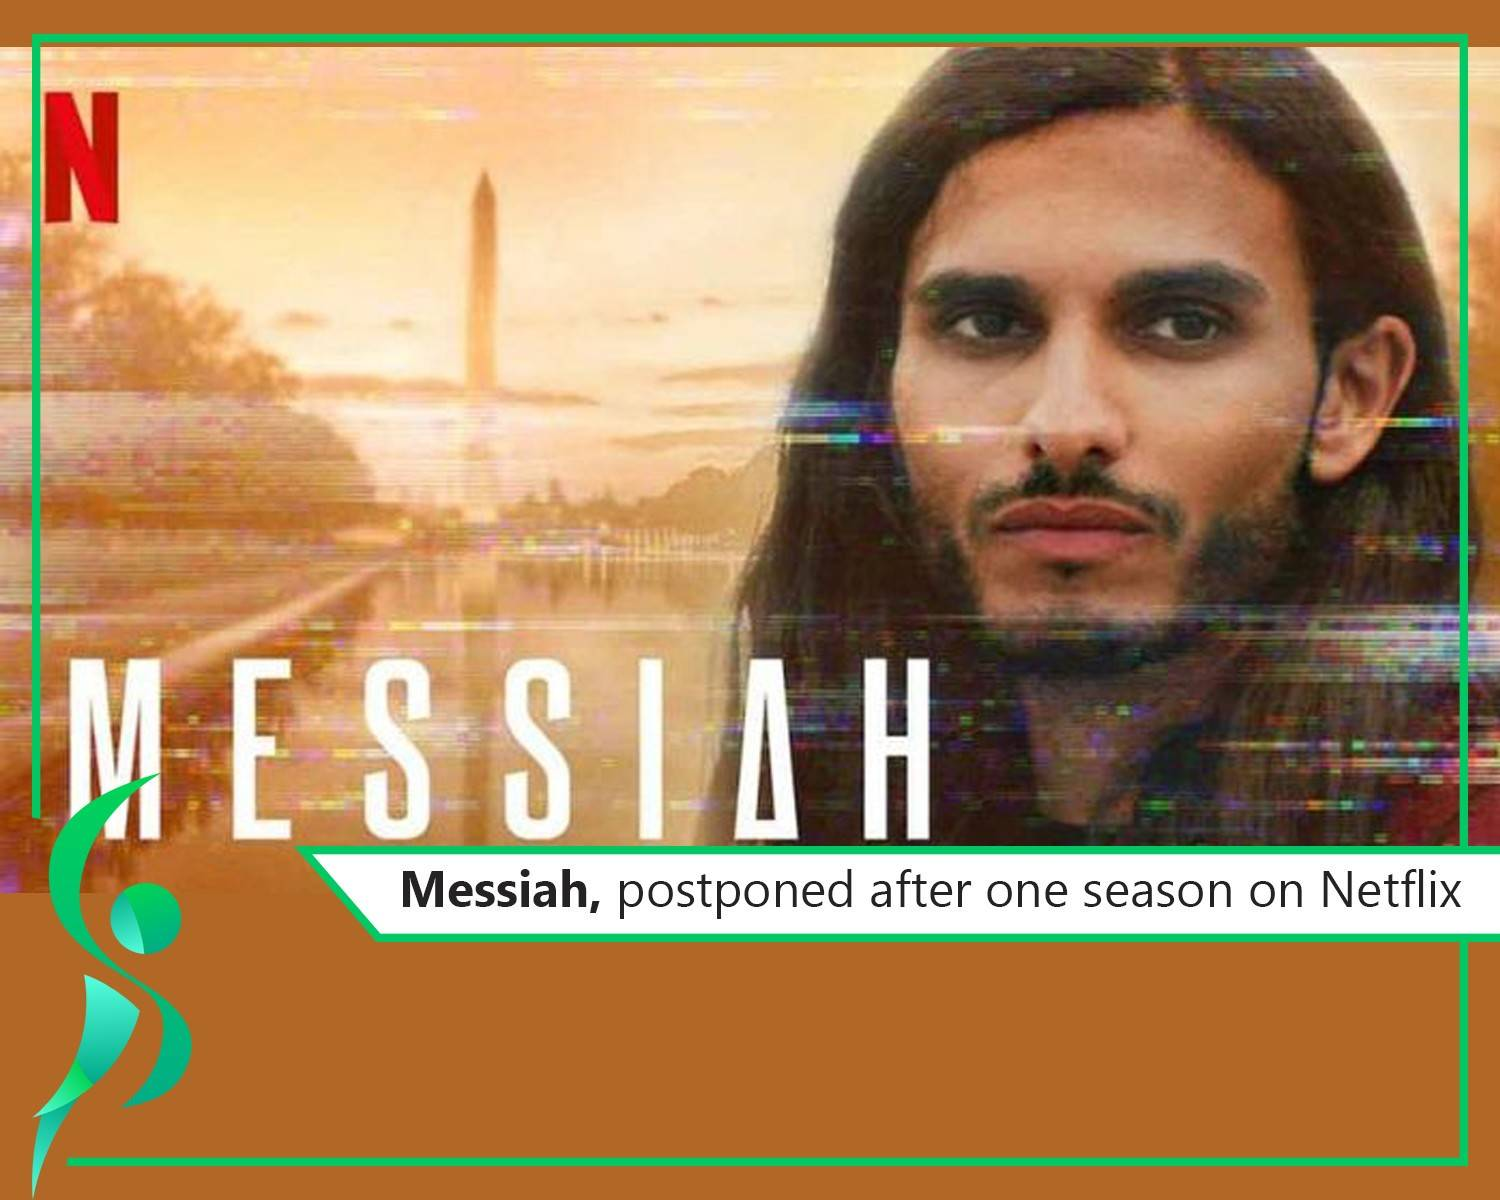 """Outrageous drama """"Messiah"""" cancelled on Netflix after just one season."""